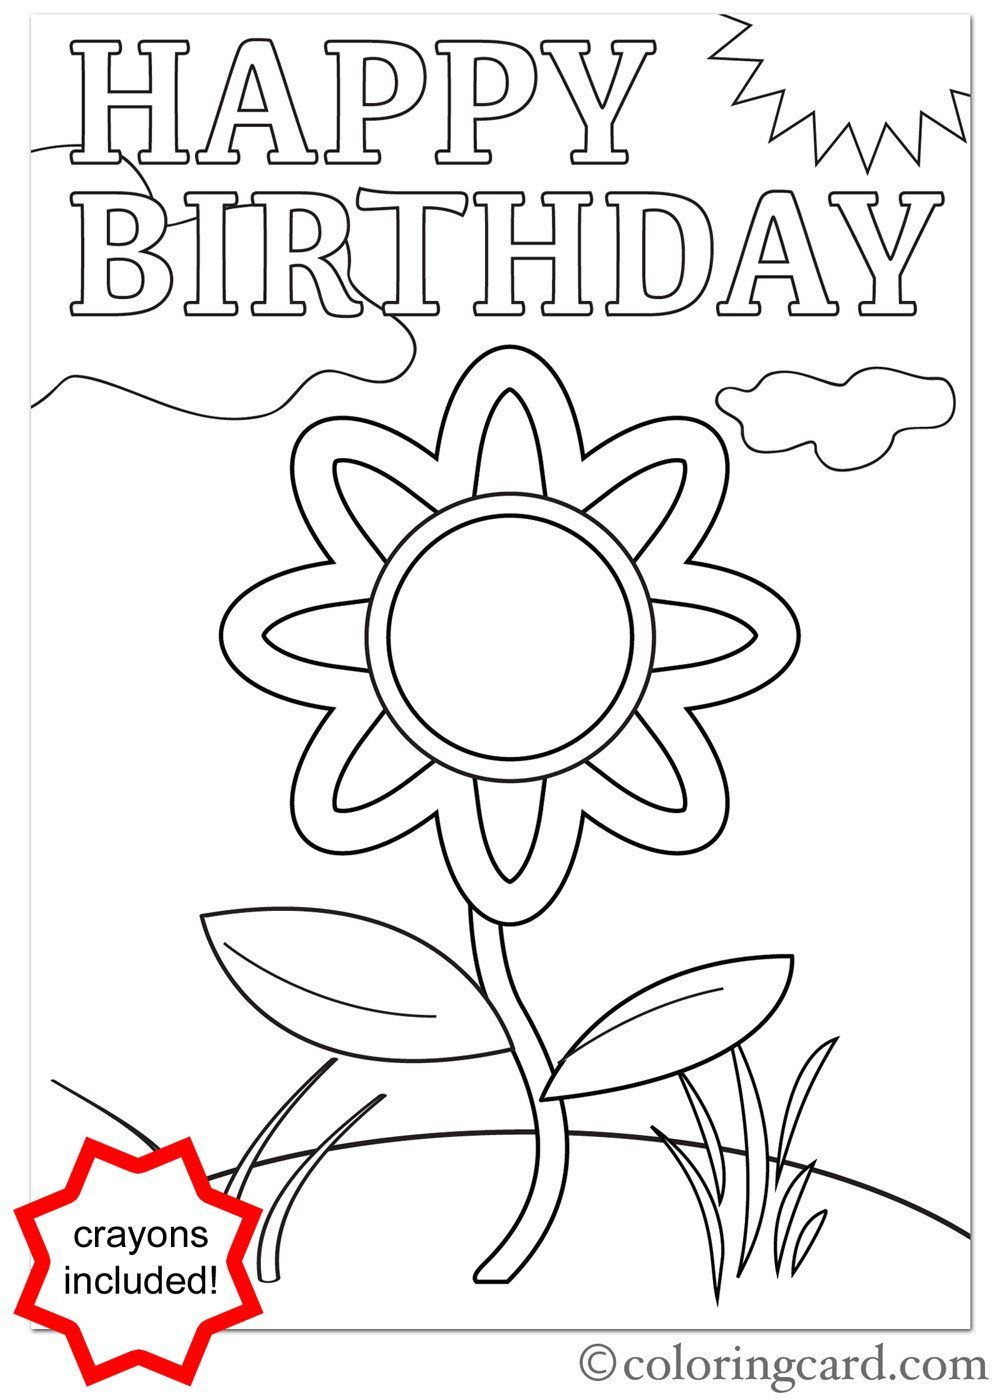 - Happy Birthday Coloring Card Awesome Free Printable Coloring